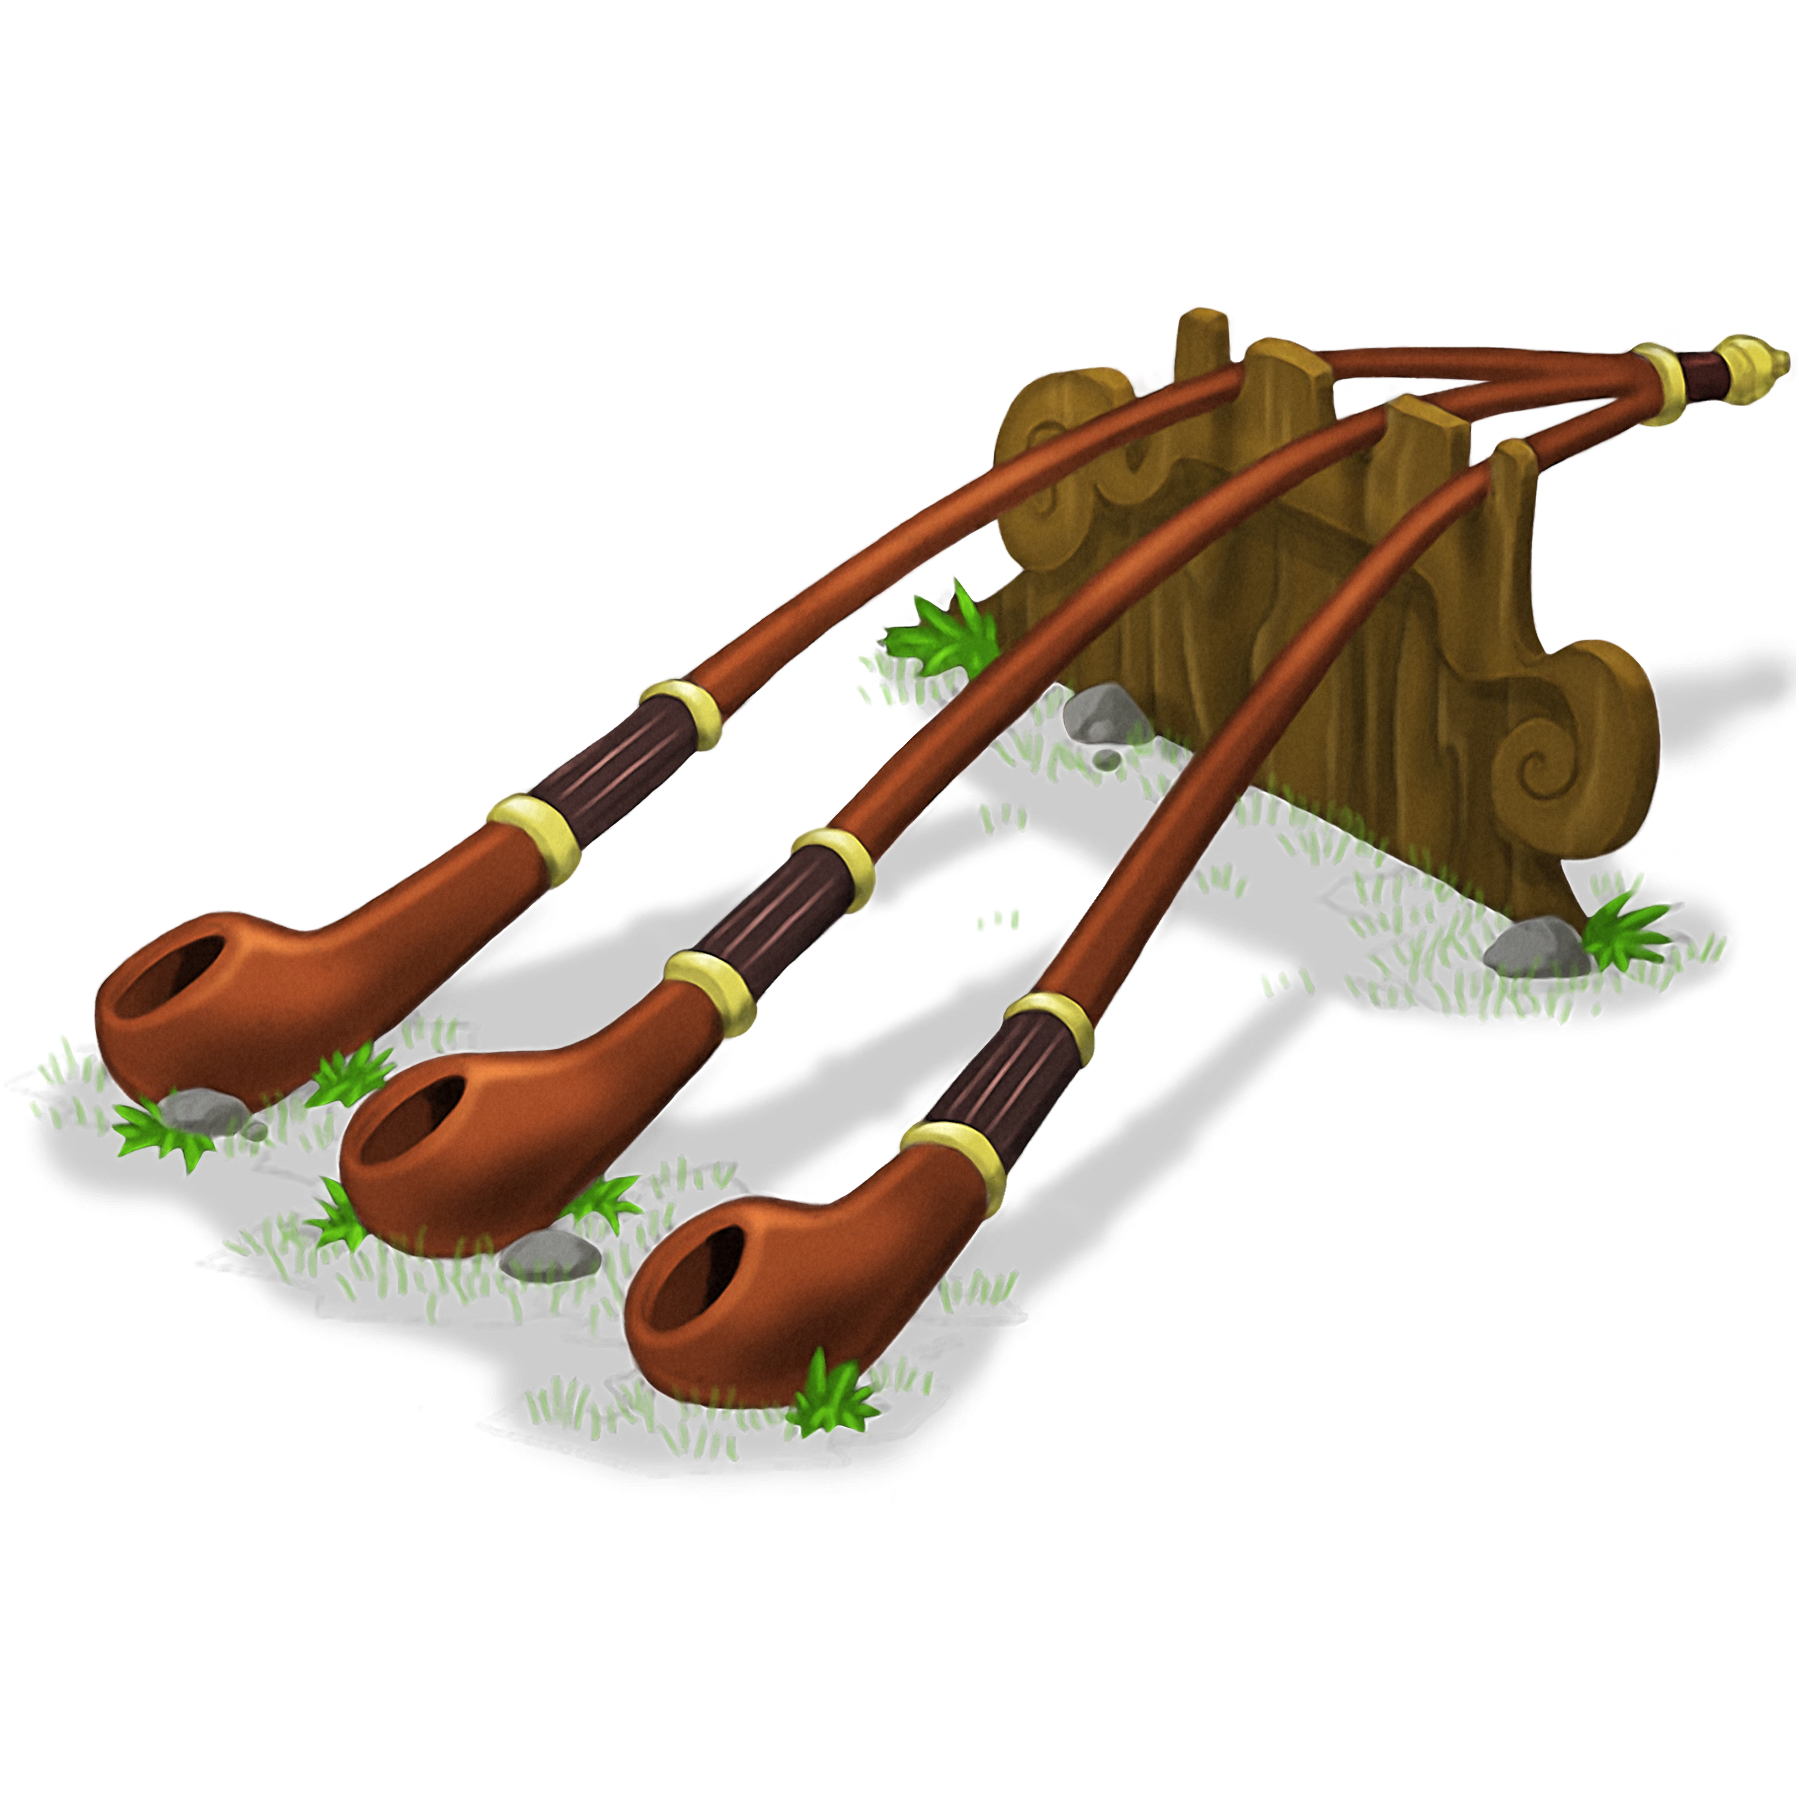 File:Pipes of Cicado.png